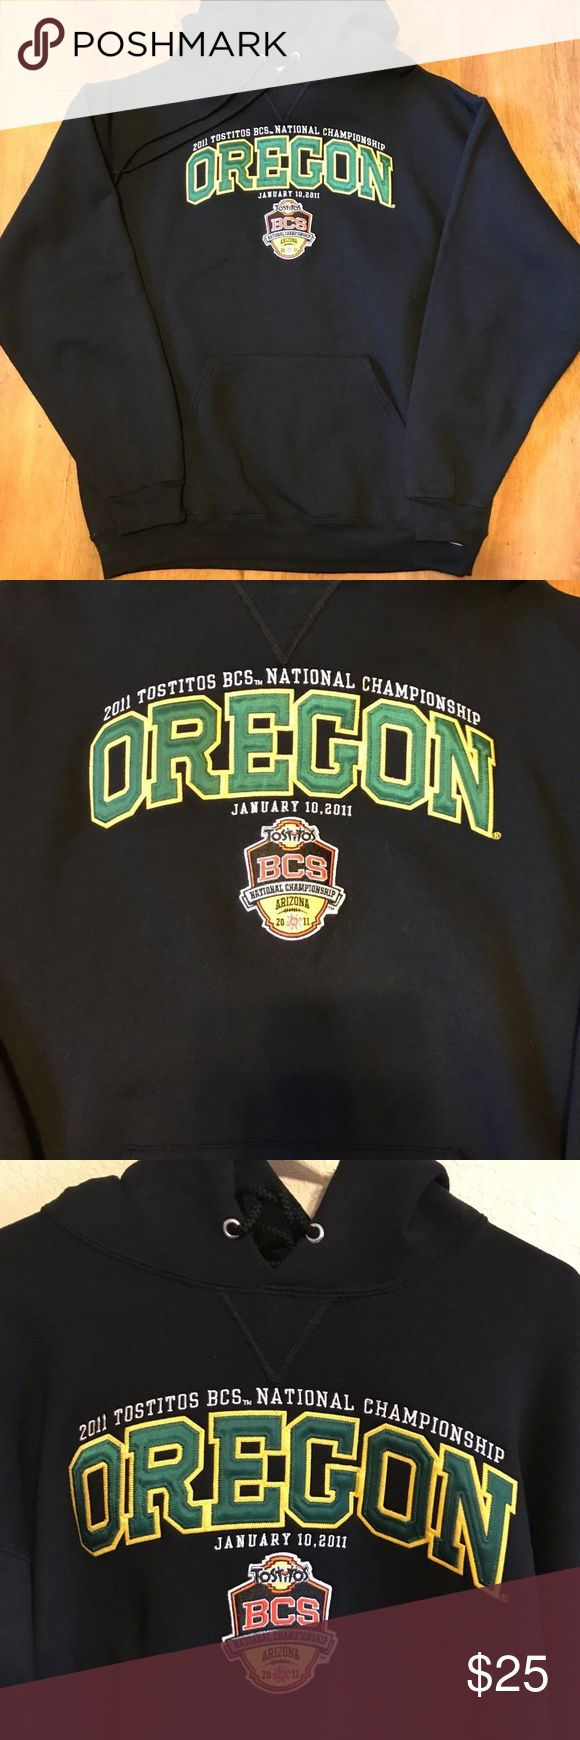 "University of Oregon Ducks Football Hoodie University of Oregon Ducks 2011 Tostitos BCS National Championship Hoodie.  This hoodie is black and size XL.    Measurements:  underarm to underarm across front: 25""   Length from back collar to hem: 29""  Condition: Appears unworn. This hoodie is in very good pre-owned condition.  Colors are bright.  No fading, holes or stains. Russell Athletic Jackets & Coats"